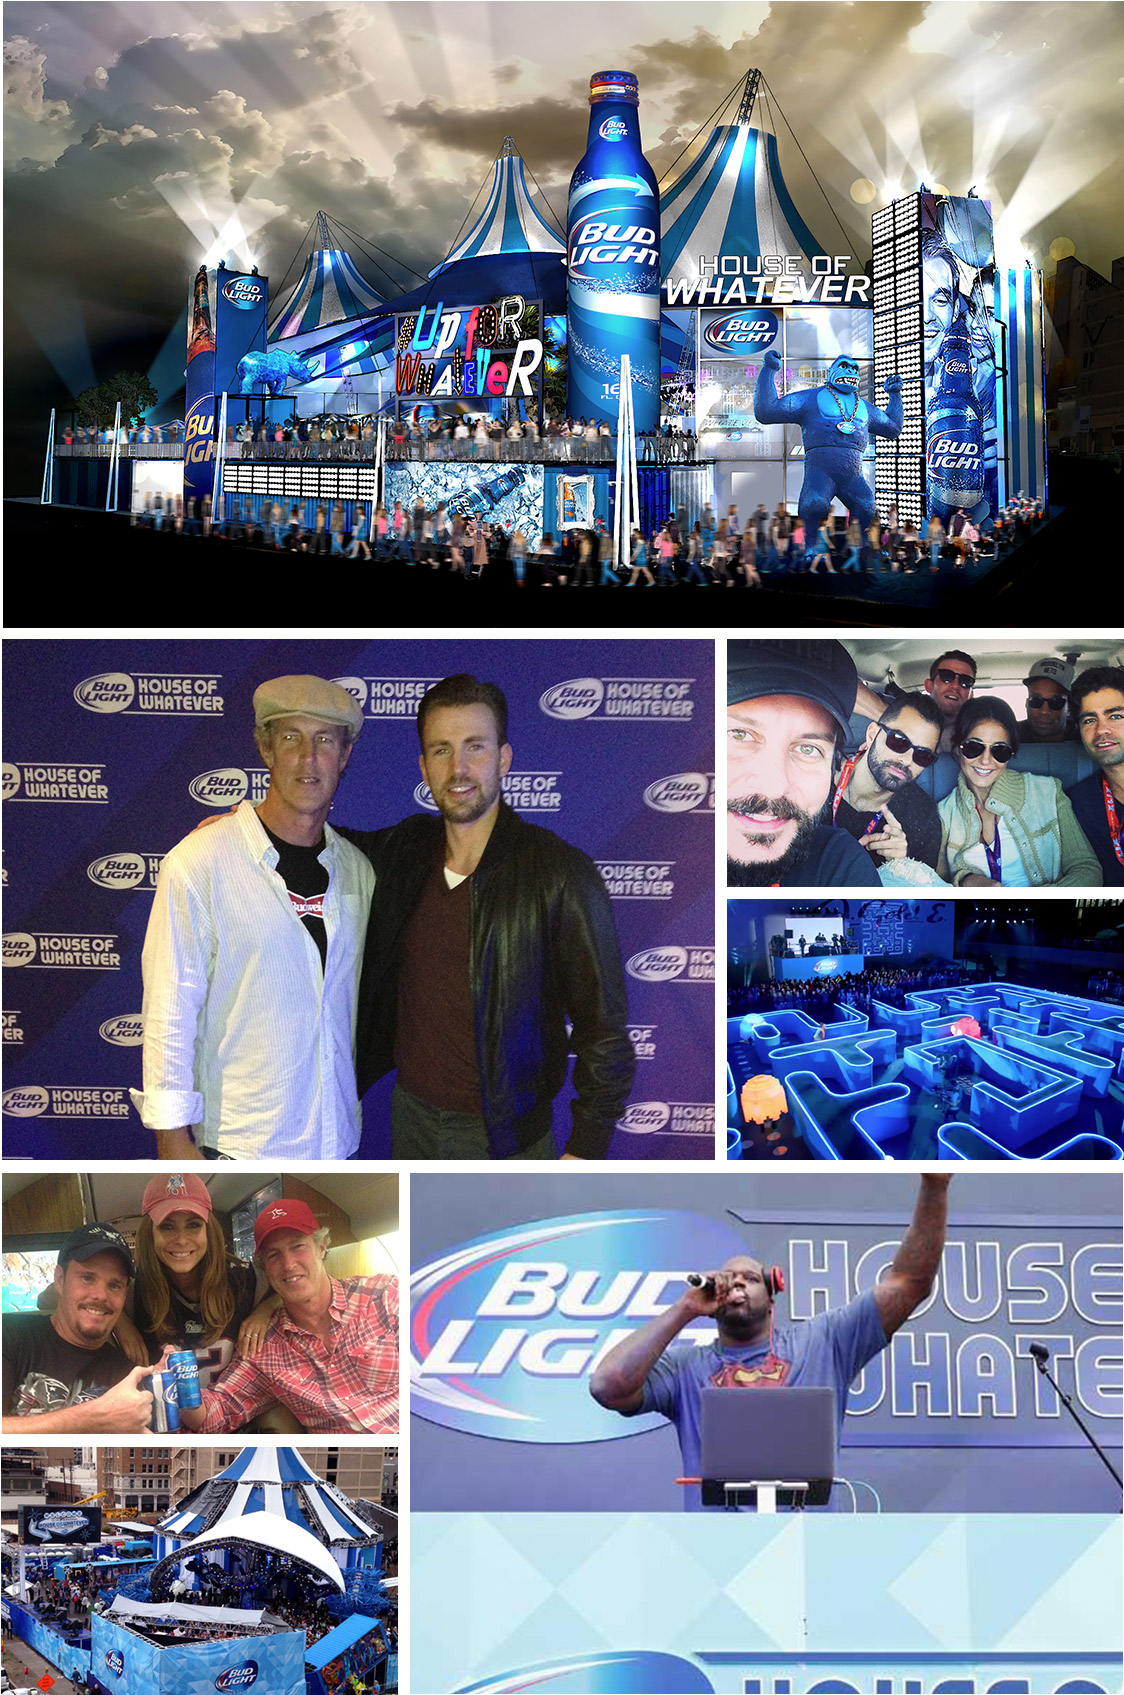 BudLight-Images